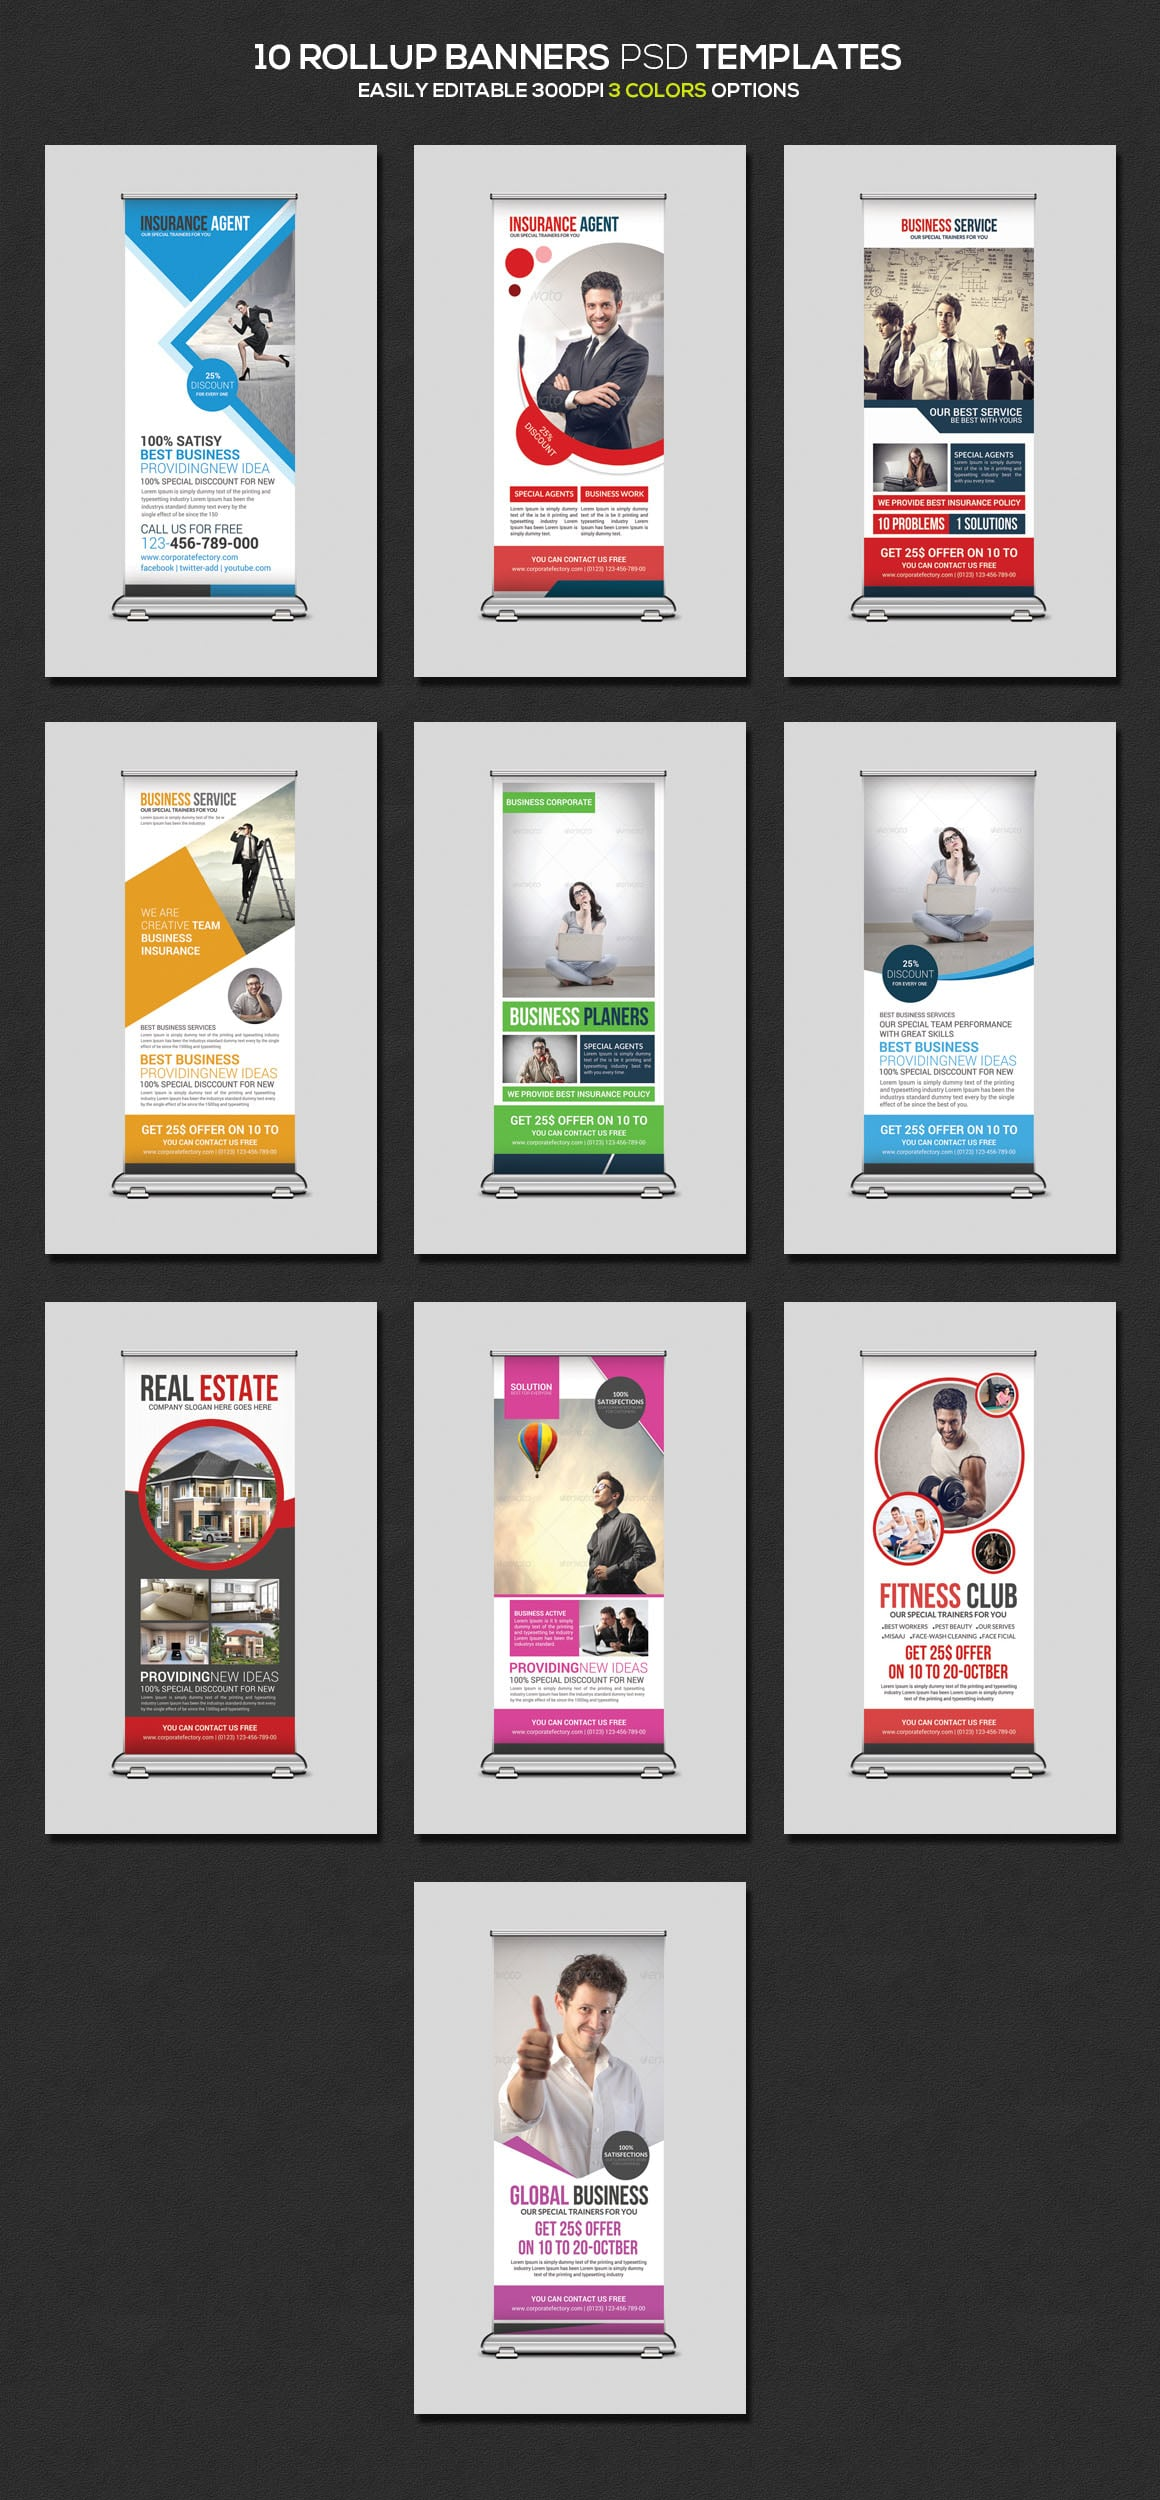 10 Rollup Banners PSD Templates